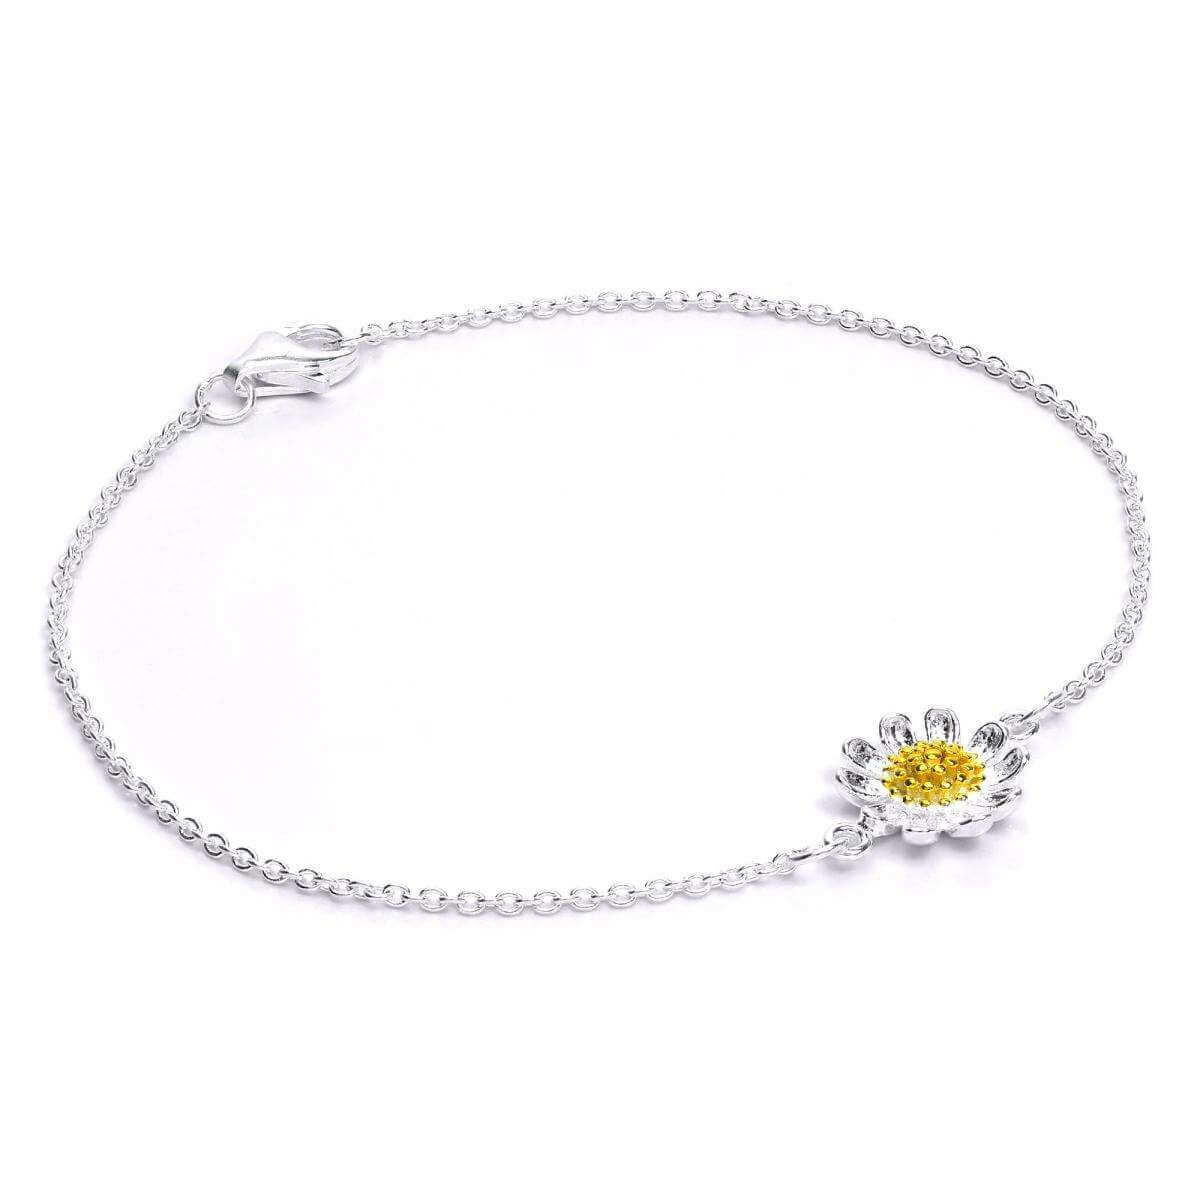 Sterling Silver & Gold Plated Daisy Flower Bracelet 7 Inches